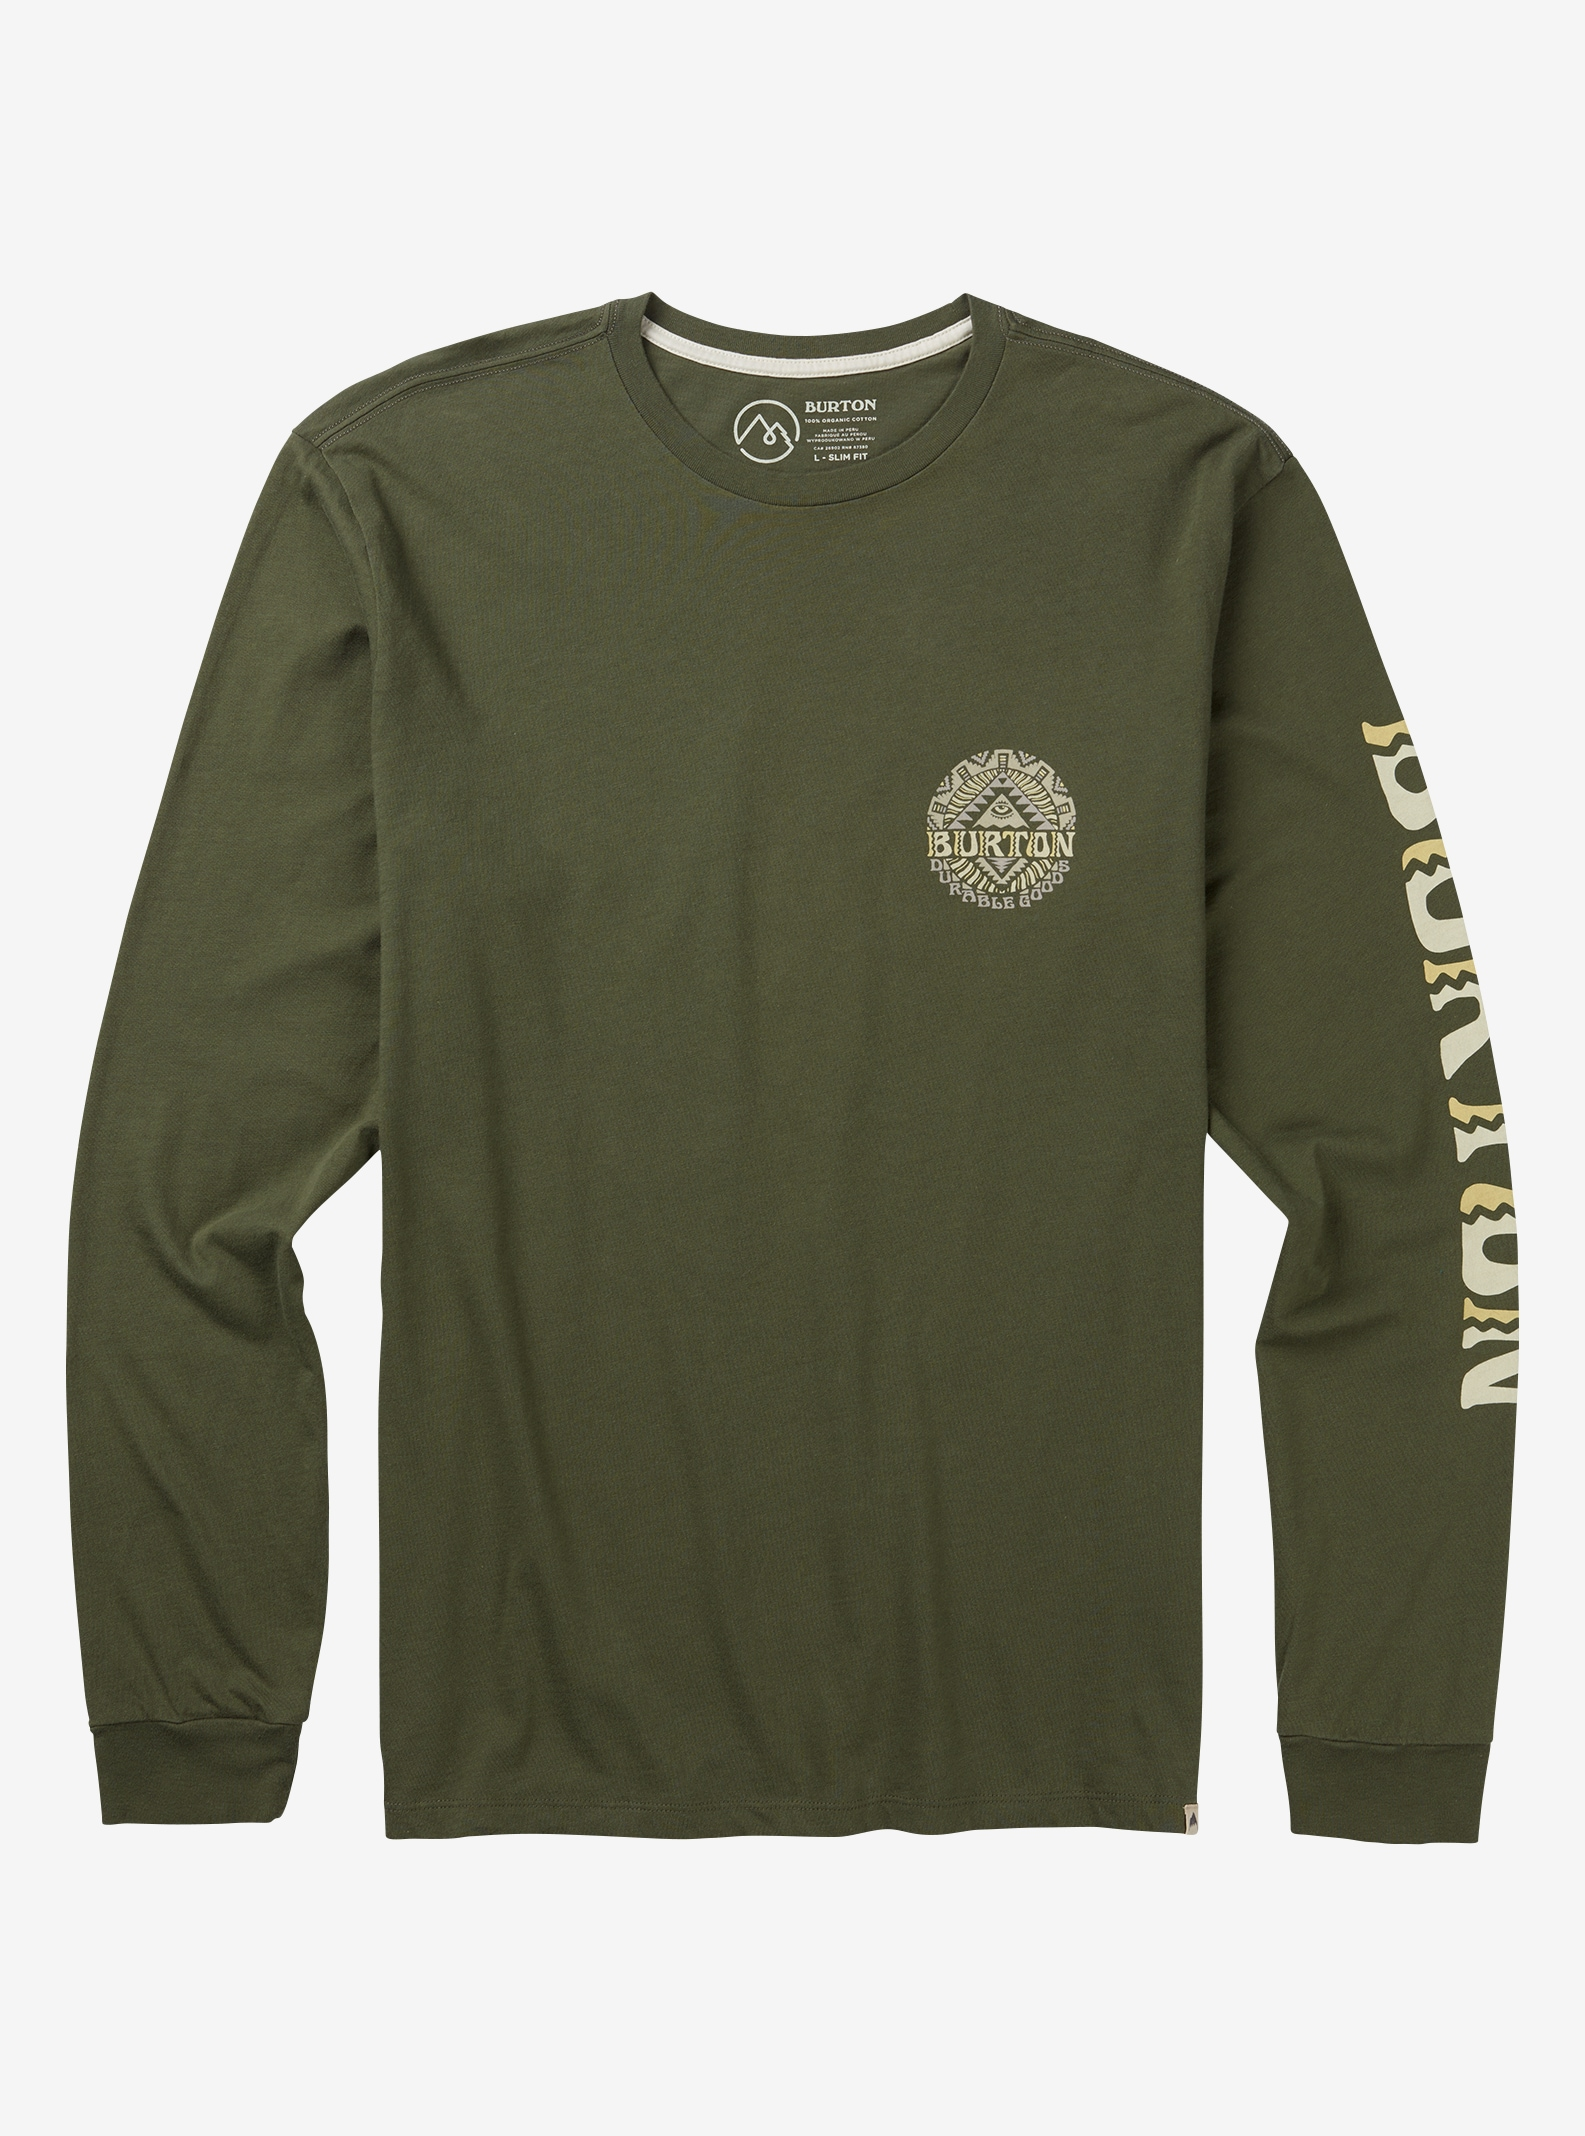 Men's Burton Monterey Long Sleeve T Shirt shown in Dusty Olive